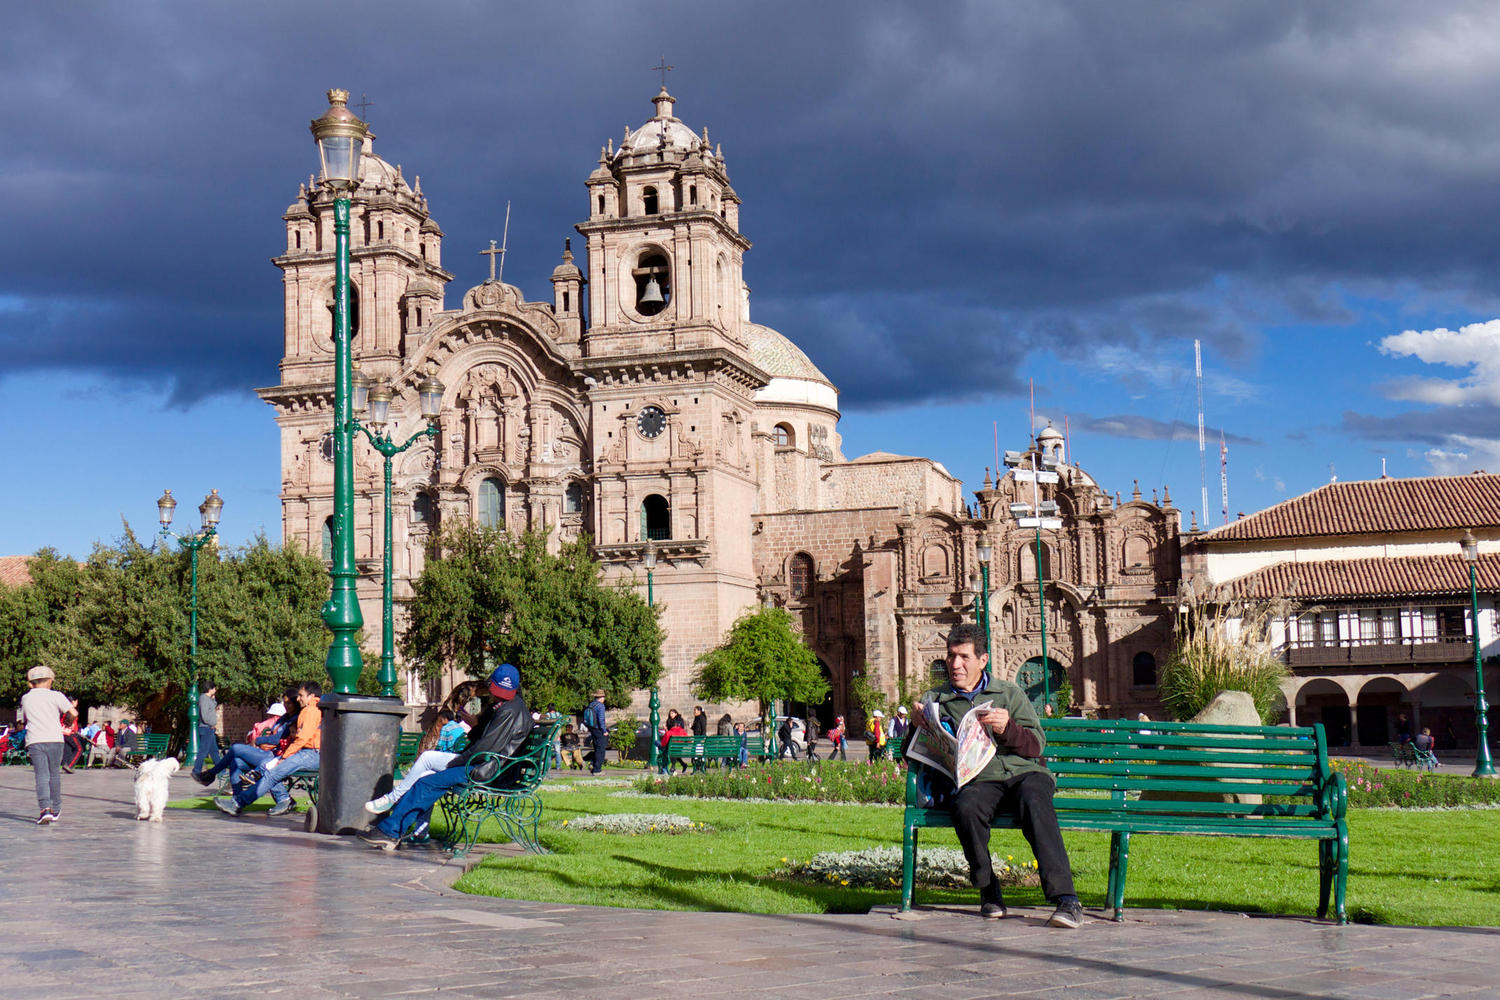 Cusco's bustling main square, the Plaza de Armas